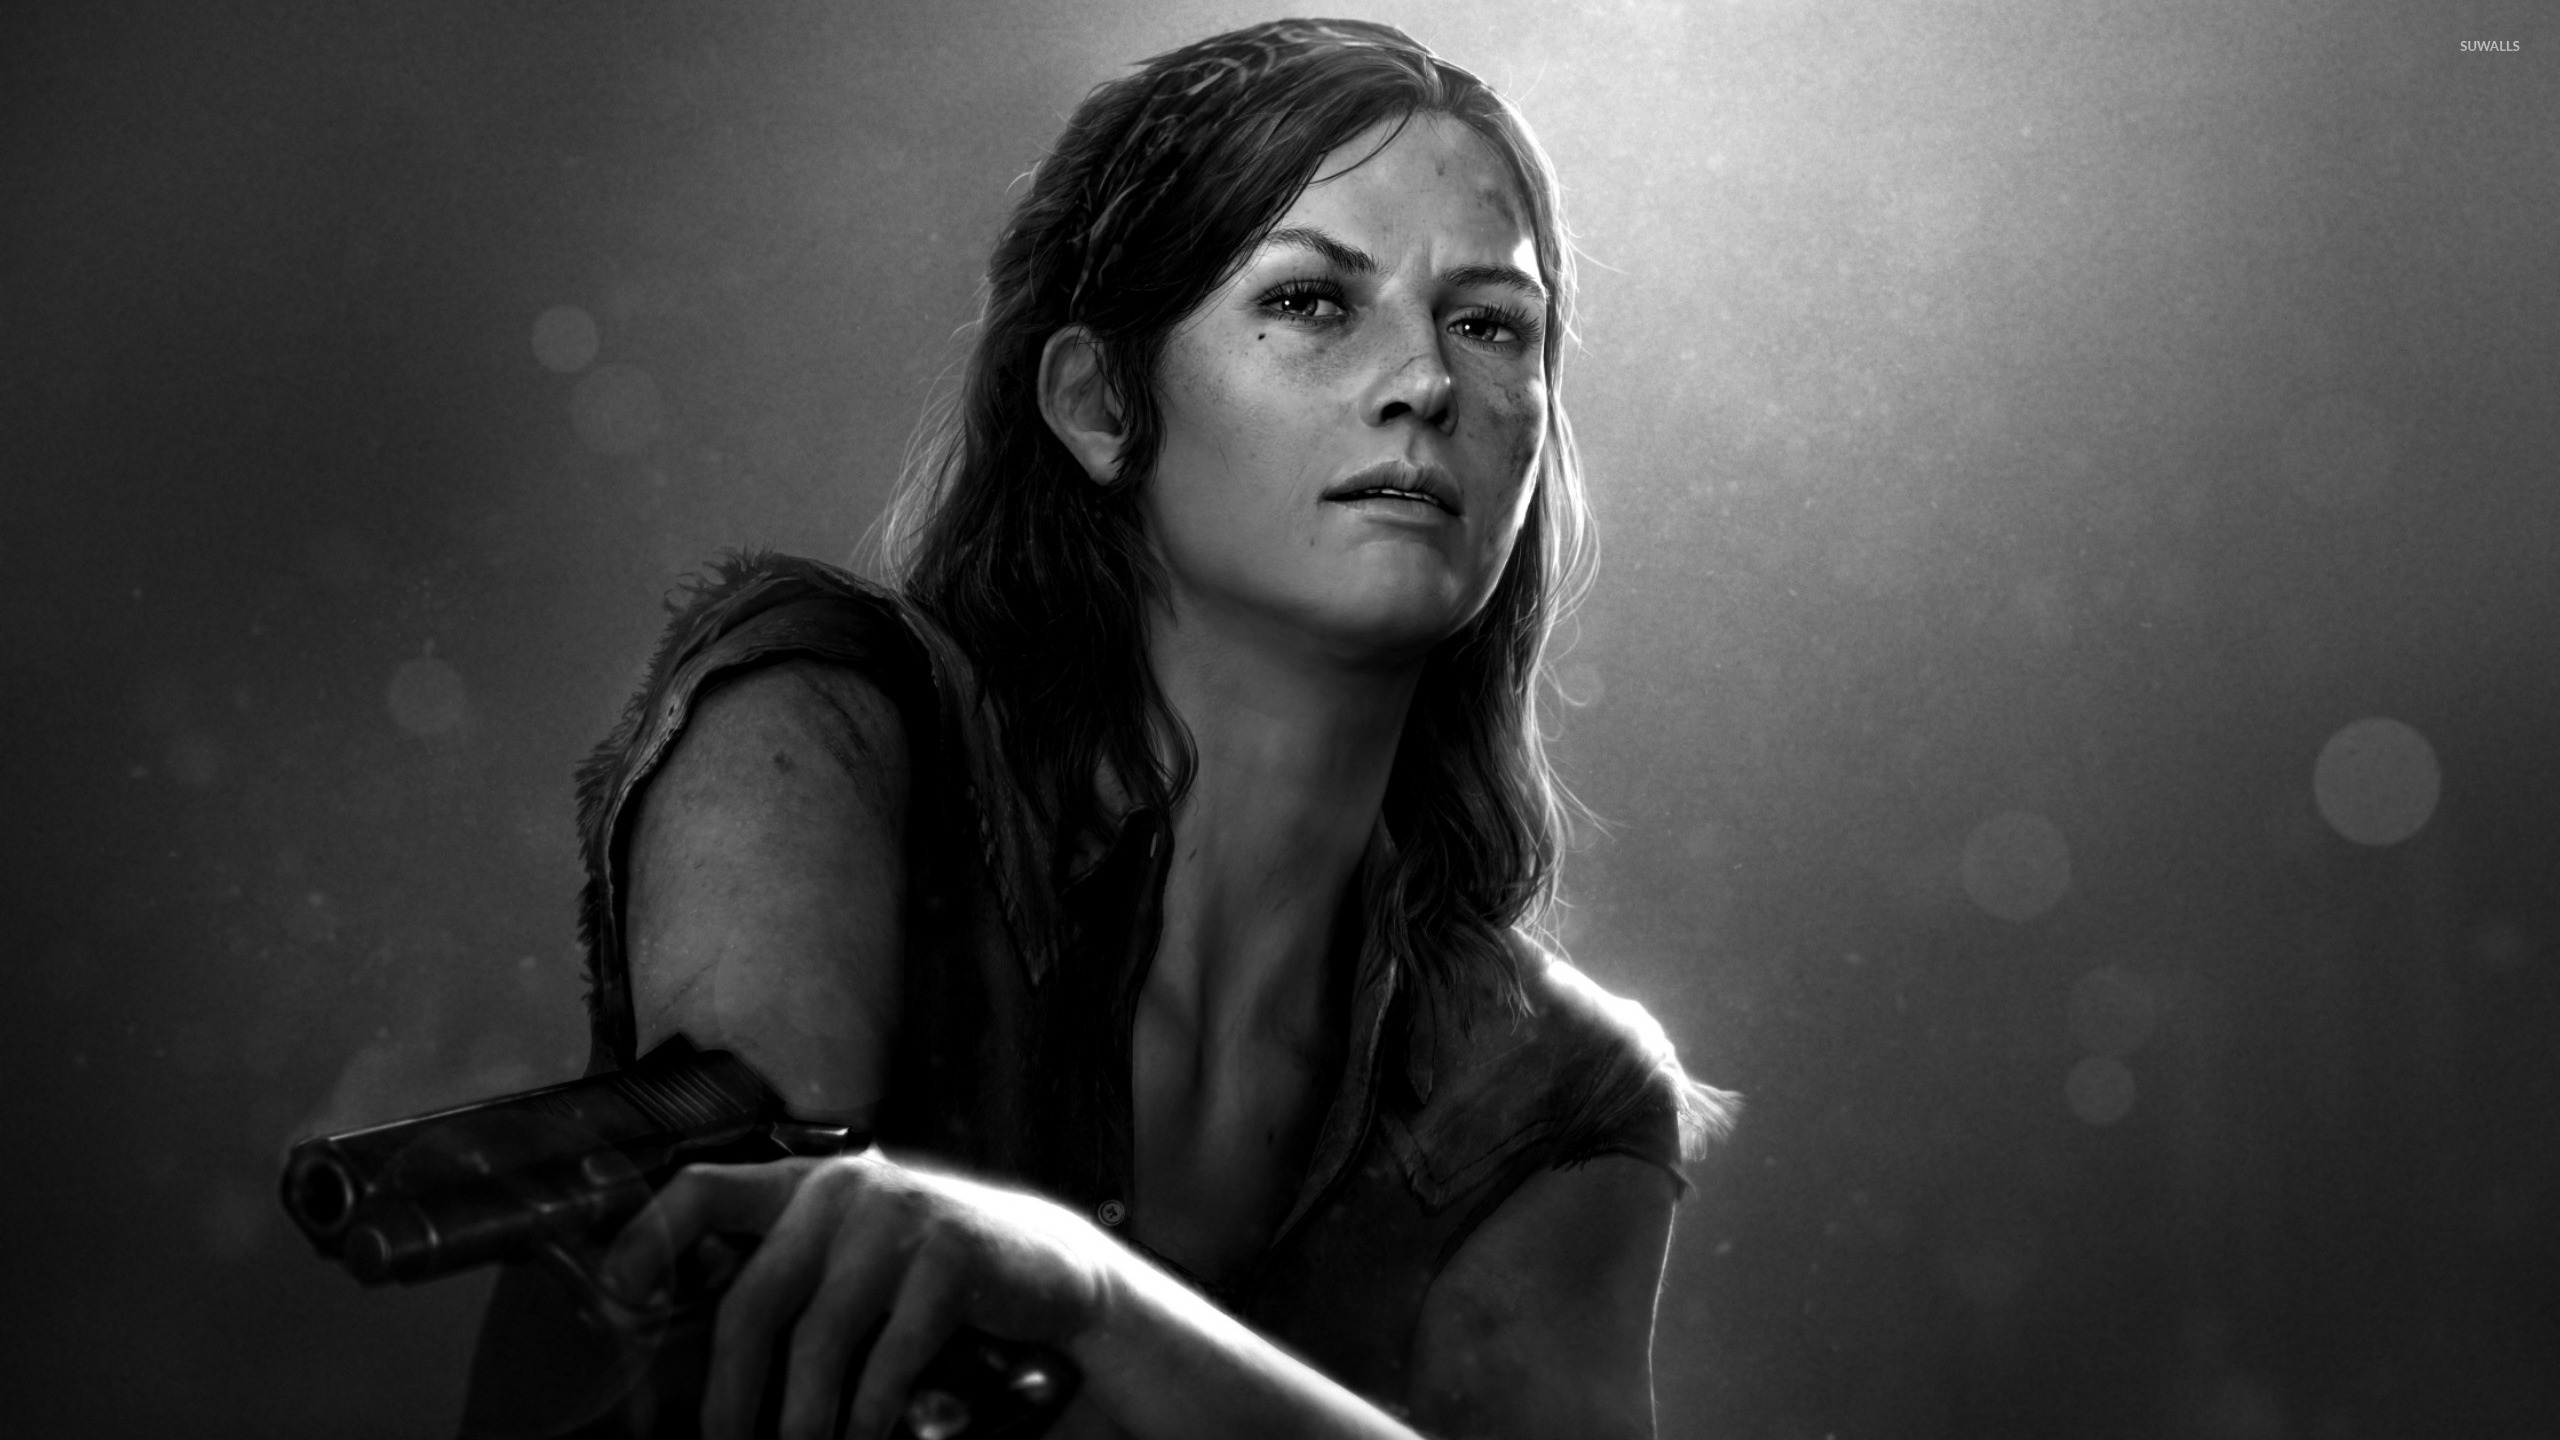 Tess The Last Of Us Wallpaper Game Wallpapers 20912